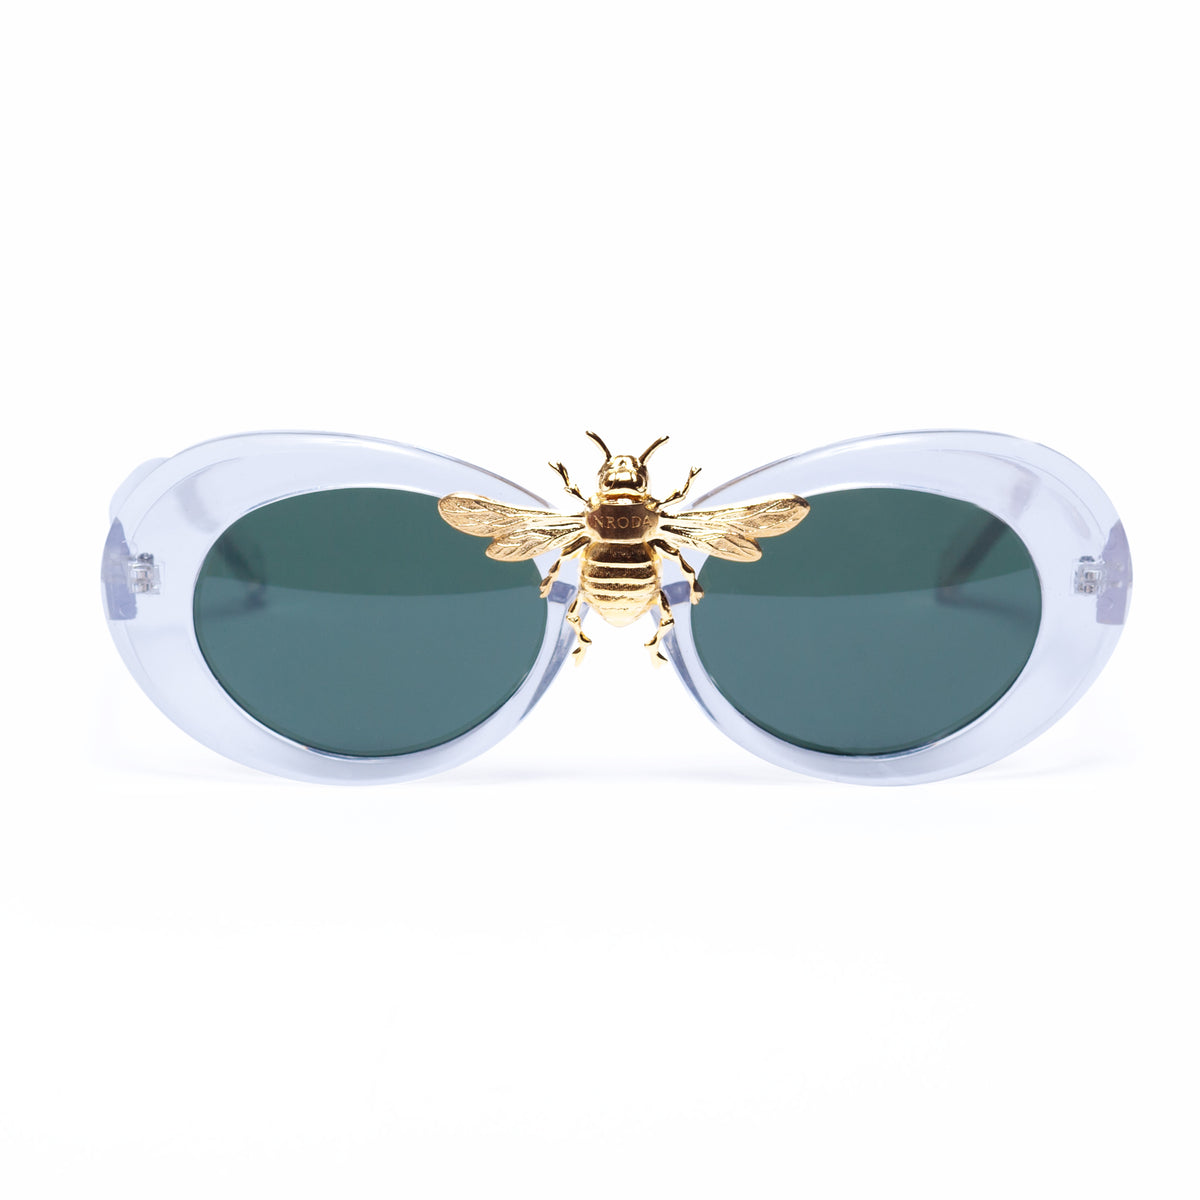 Migos Bee Clout Goggles in Cocoa Luxe  SUNNIES + OPTICS Sunglasses Collection, Tnemnroda man- NRODA